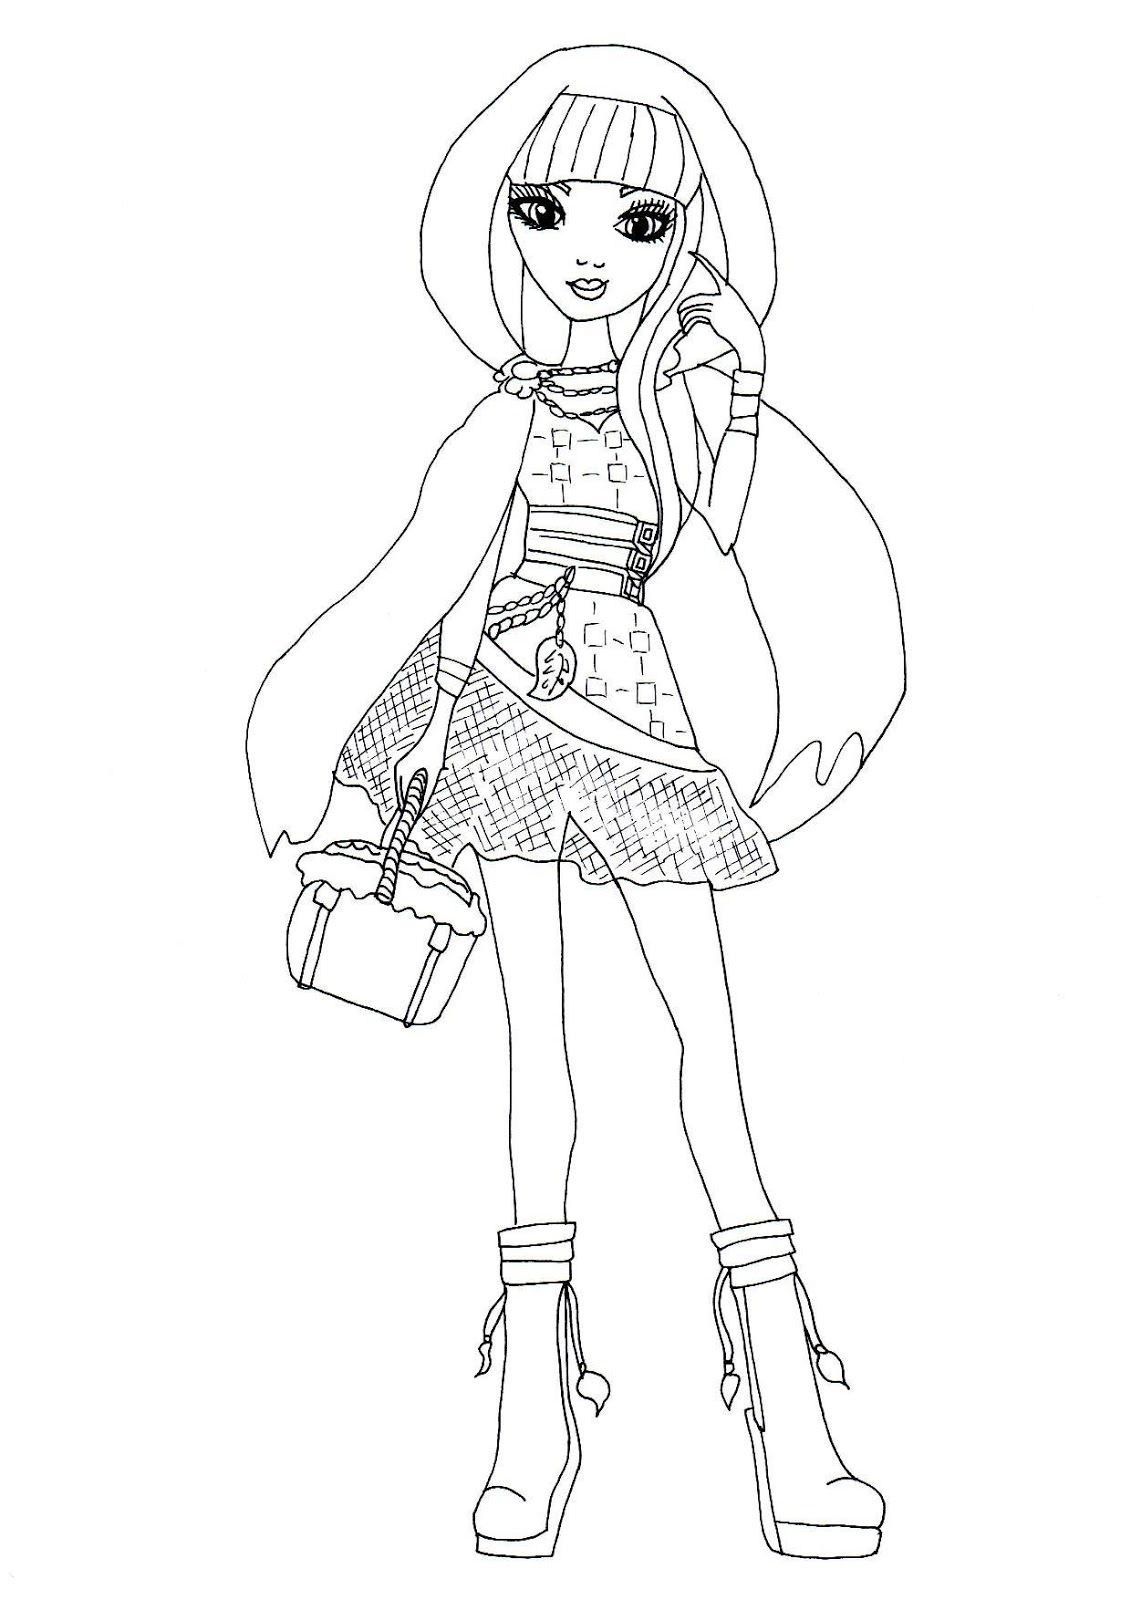 Ever after high coloring pictures - Free Printable Ever After High Coloring Pages Cerise Hood Ever After High Coloring Page